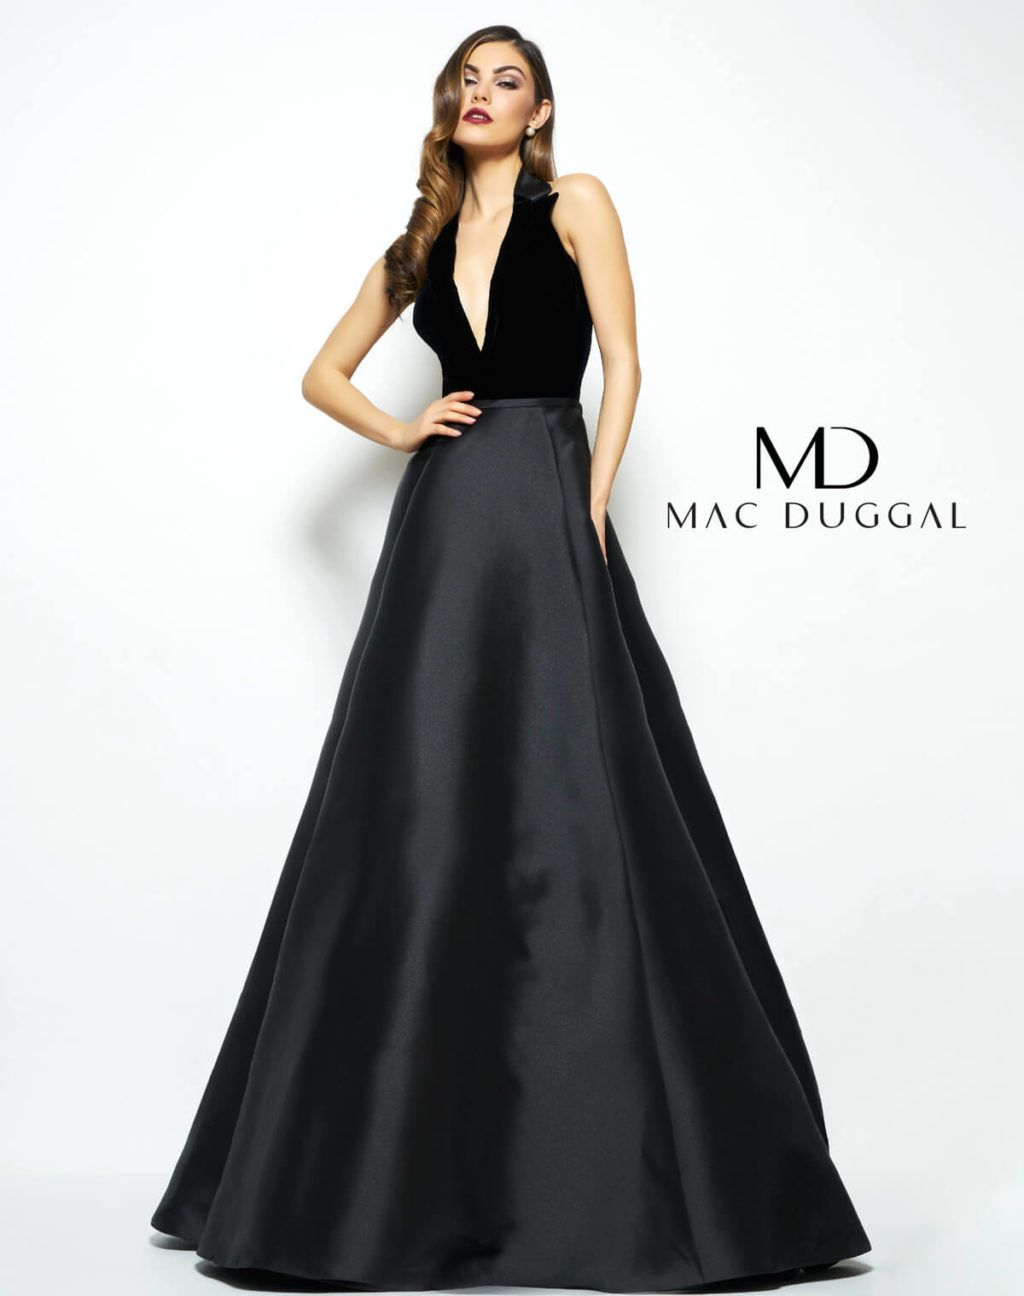 Black halter neck evening gown due in store for fall fall